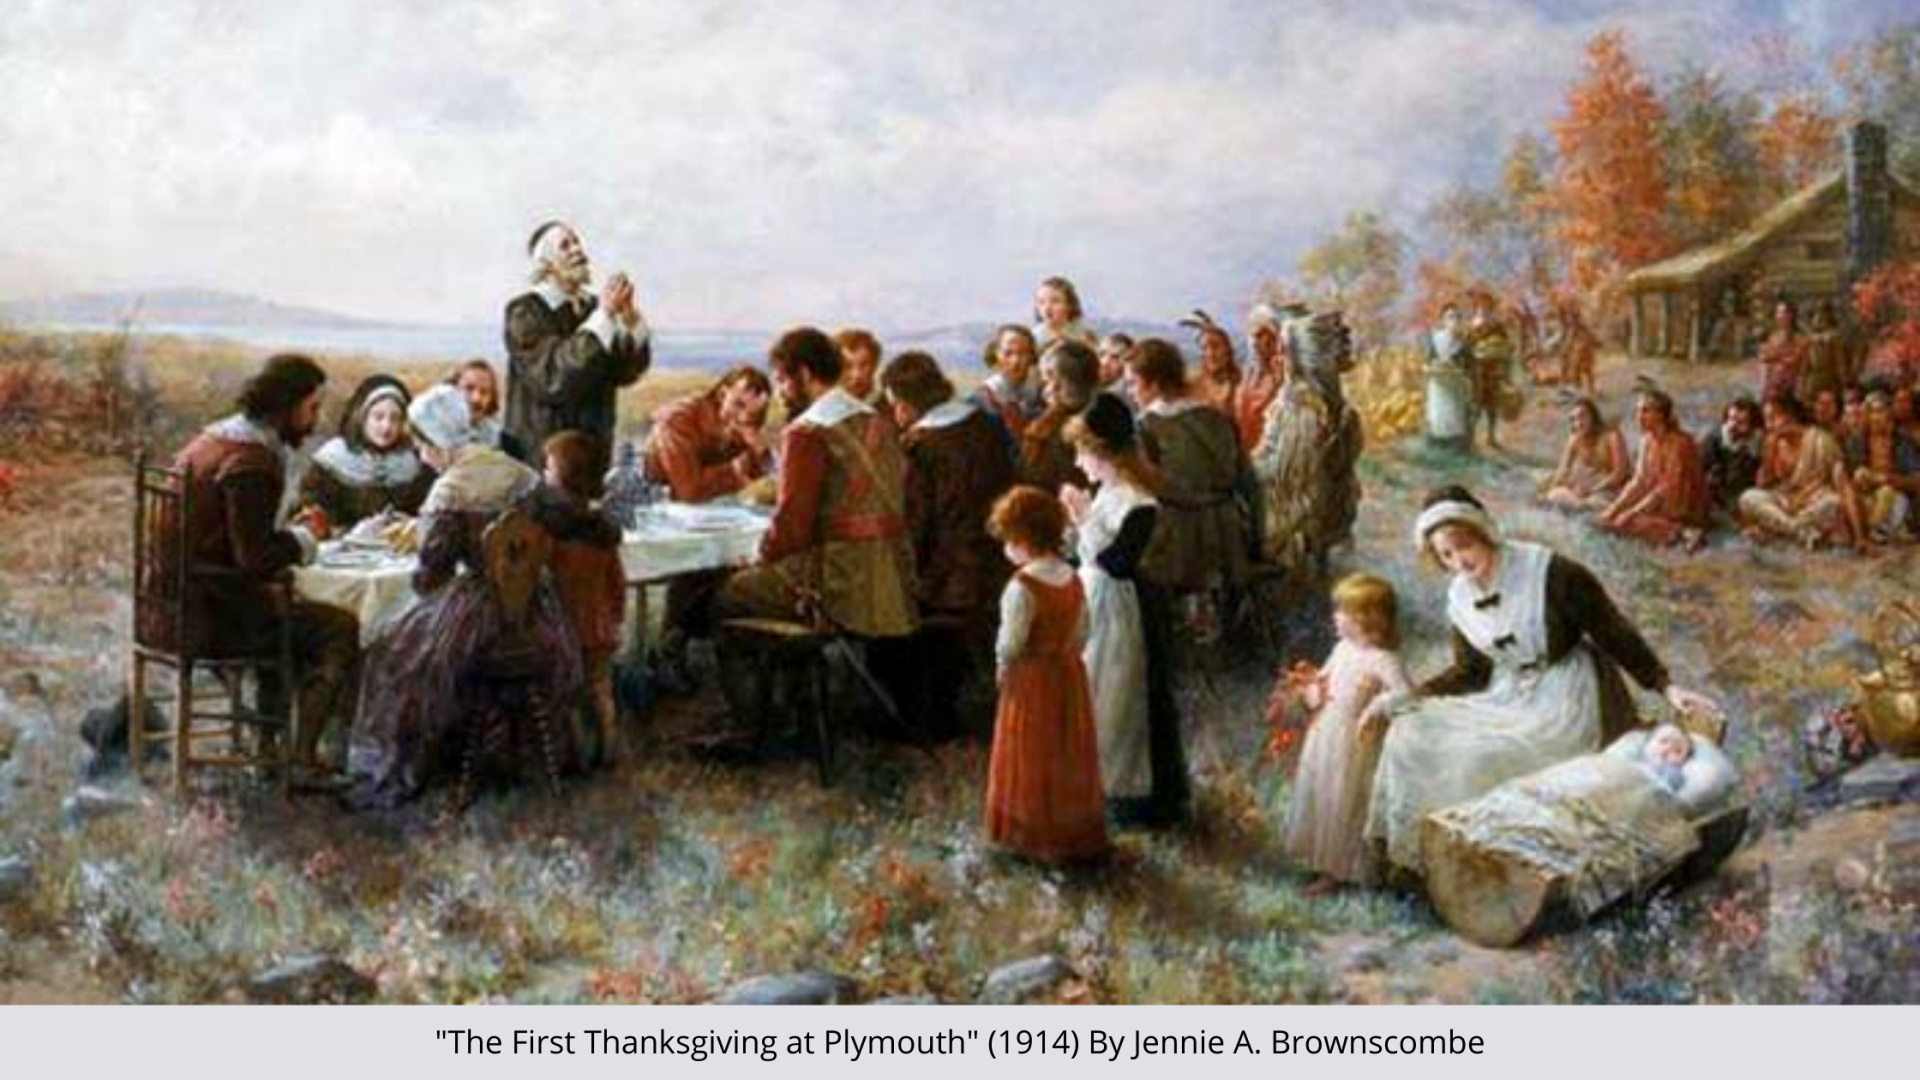 The history of the first Thanksgiving is very different from what many of us learned. We need to rethink how we celebrate the holiday and acknowledge the Indigenous People's feelings over this controversial day.